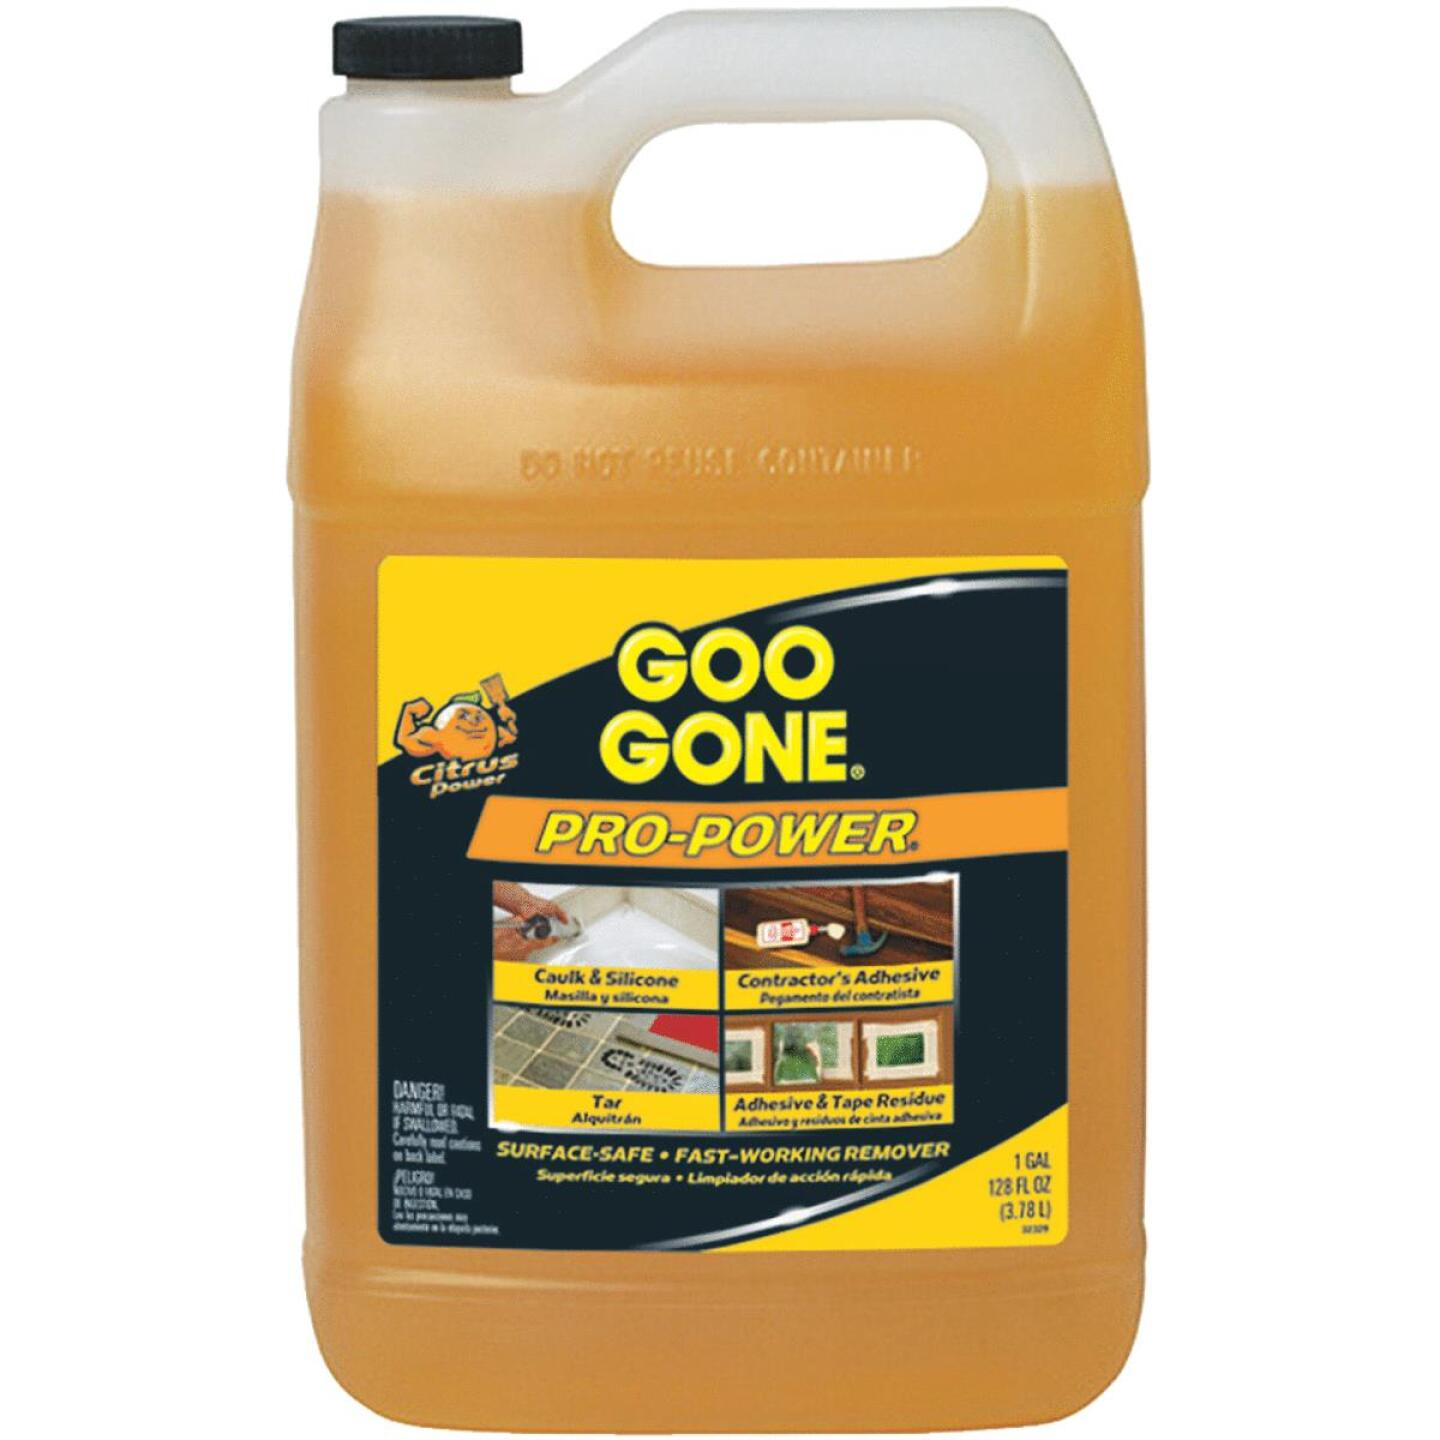 Goo Gone 1 Gal. Pro-Power Adhesive Remover Image 340